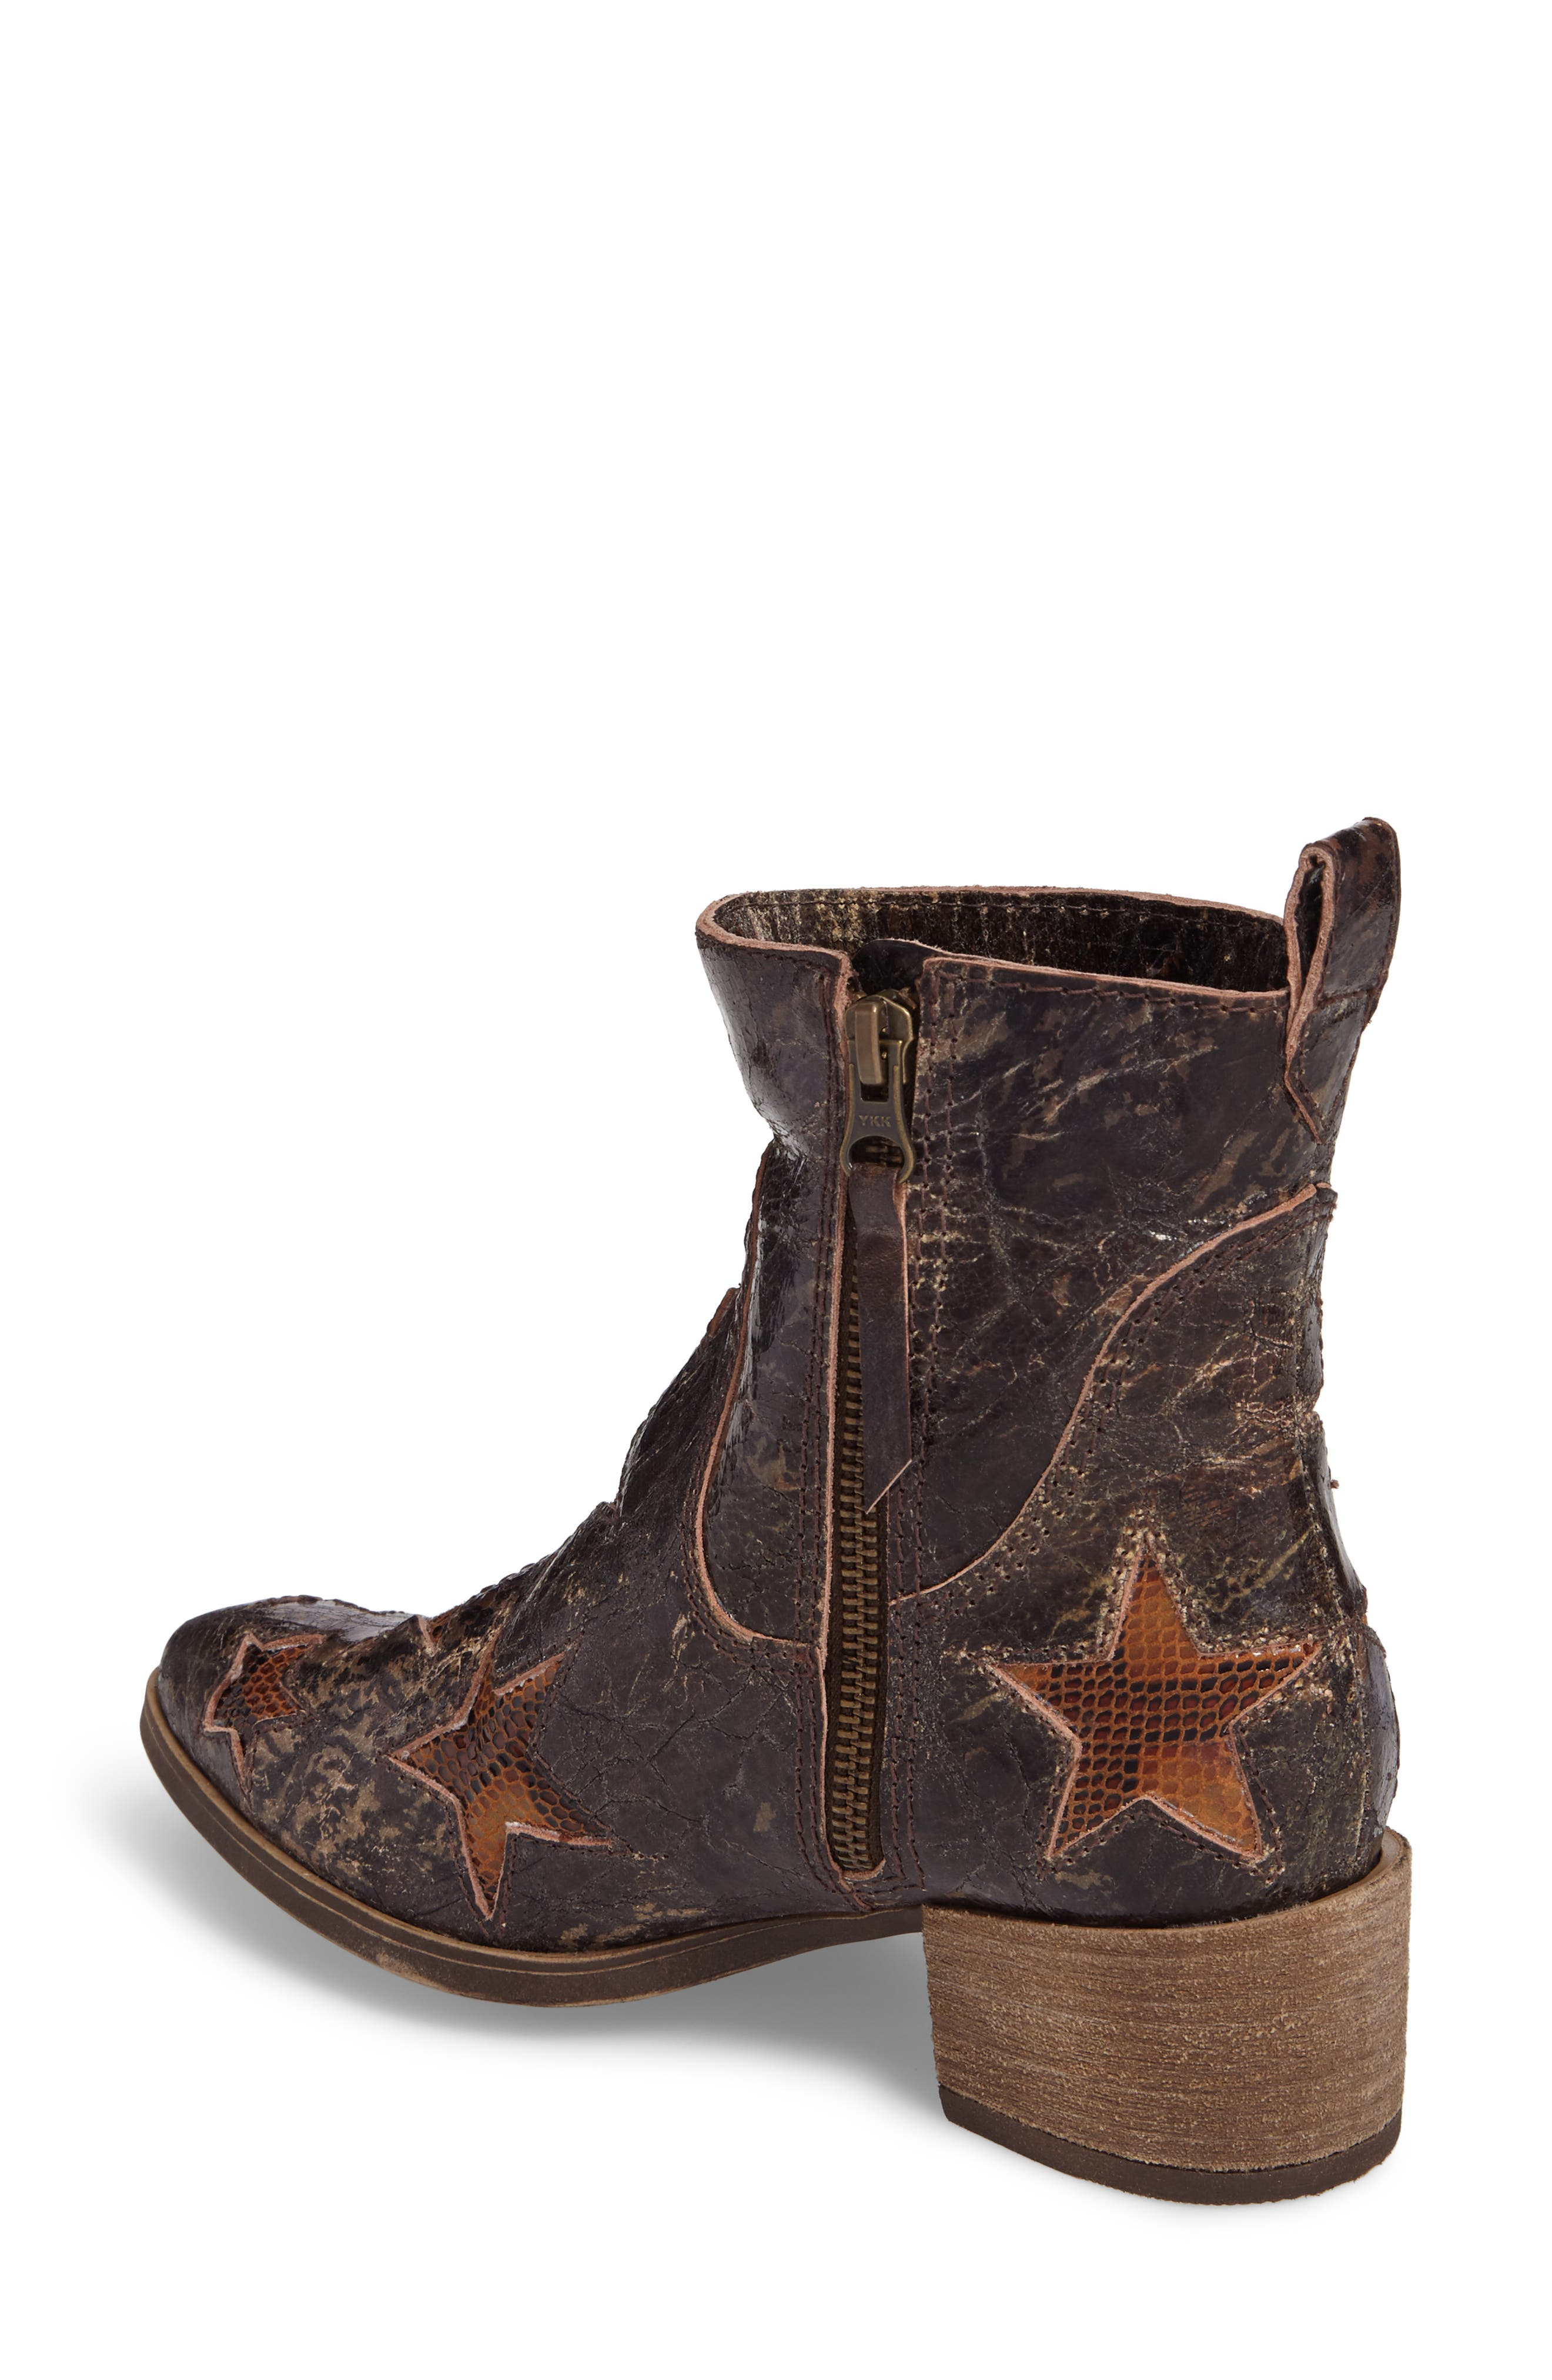 Crinkle Finish Star Bootie,                             Alternate thumbnail 2, color,                             Mid Brown Leather